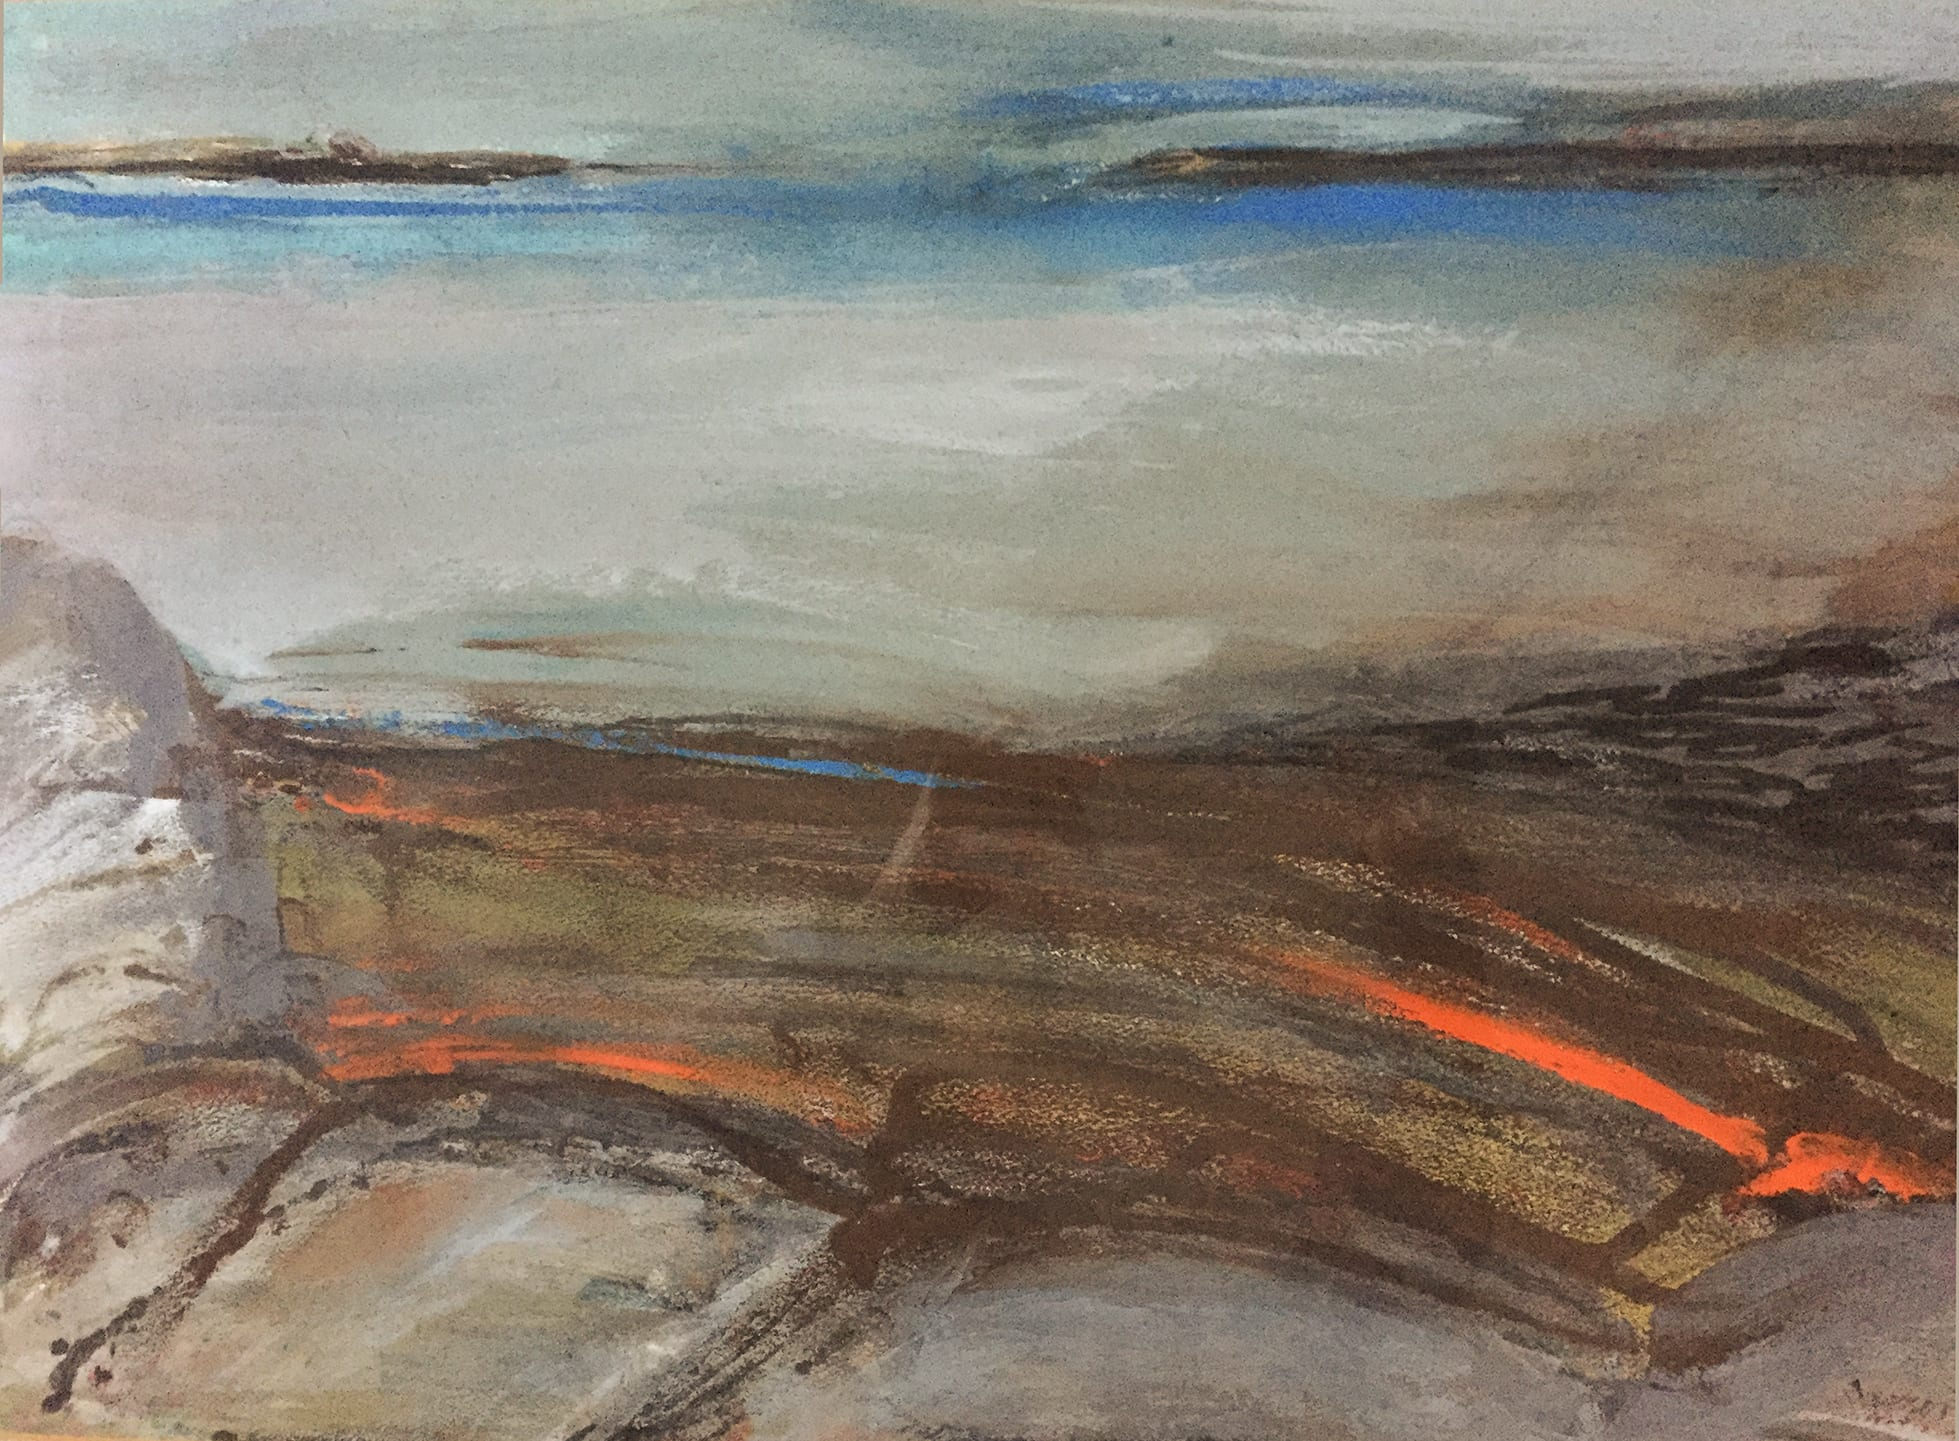 """<span class=""""link fancybox-details-link""""><a href=""""/artists/134-margo-maeckelberghe/works/7543-margo-maeckelberghe-striped-landscape-1986/"""">View Detail Page</a></span><div class=""""artist""""><strong>Margo Maeckelberghe</strong></div> 1932–2014 <div class=""""title""""><em>Striped Landscape</em>, 1986</div> <div class=""""signed_and_dated"""">signed, titled, and dated verso</div> <div class=""""medium"""">mixed-media on handmade paper </div> <div class=""""dimensions"""">visible image size: 34 x 50 cm <br /> frame size: 57 x 76 cm<br /> </div><div class=""""price"""">£1,500.00</div><div class=""""copyright_line"""">Copyright The Artist</div>"""